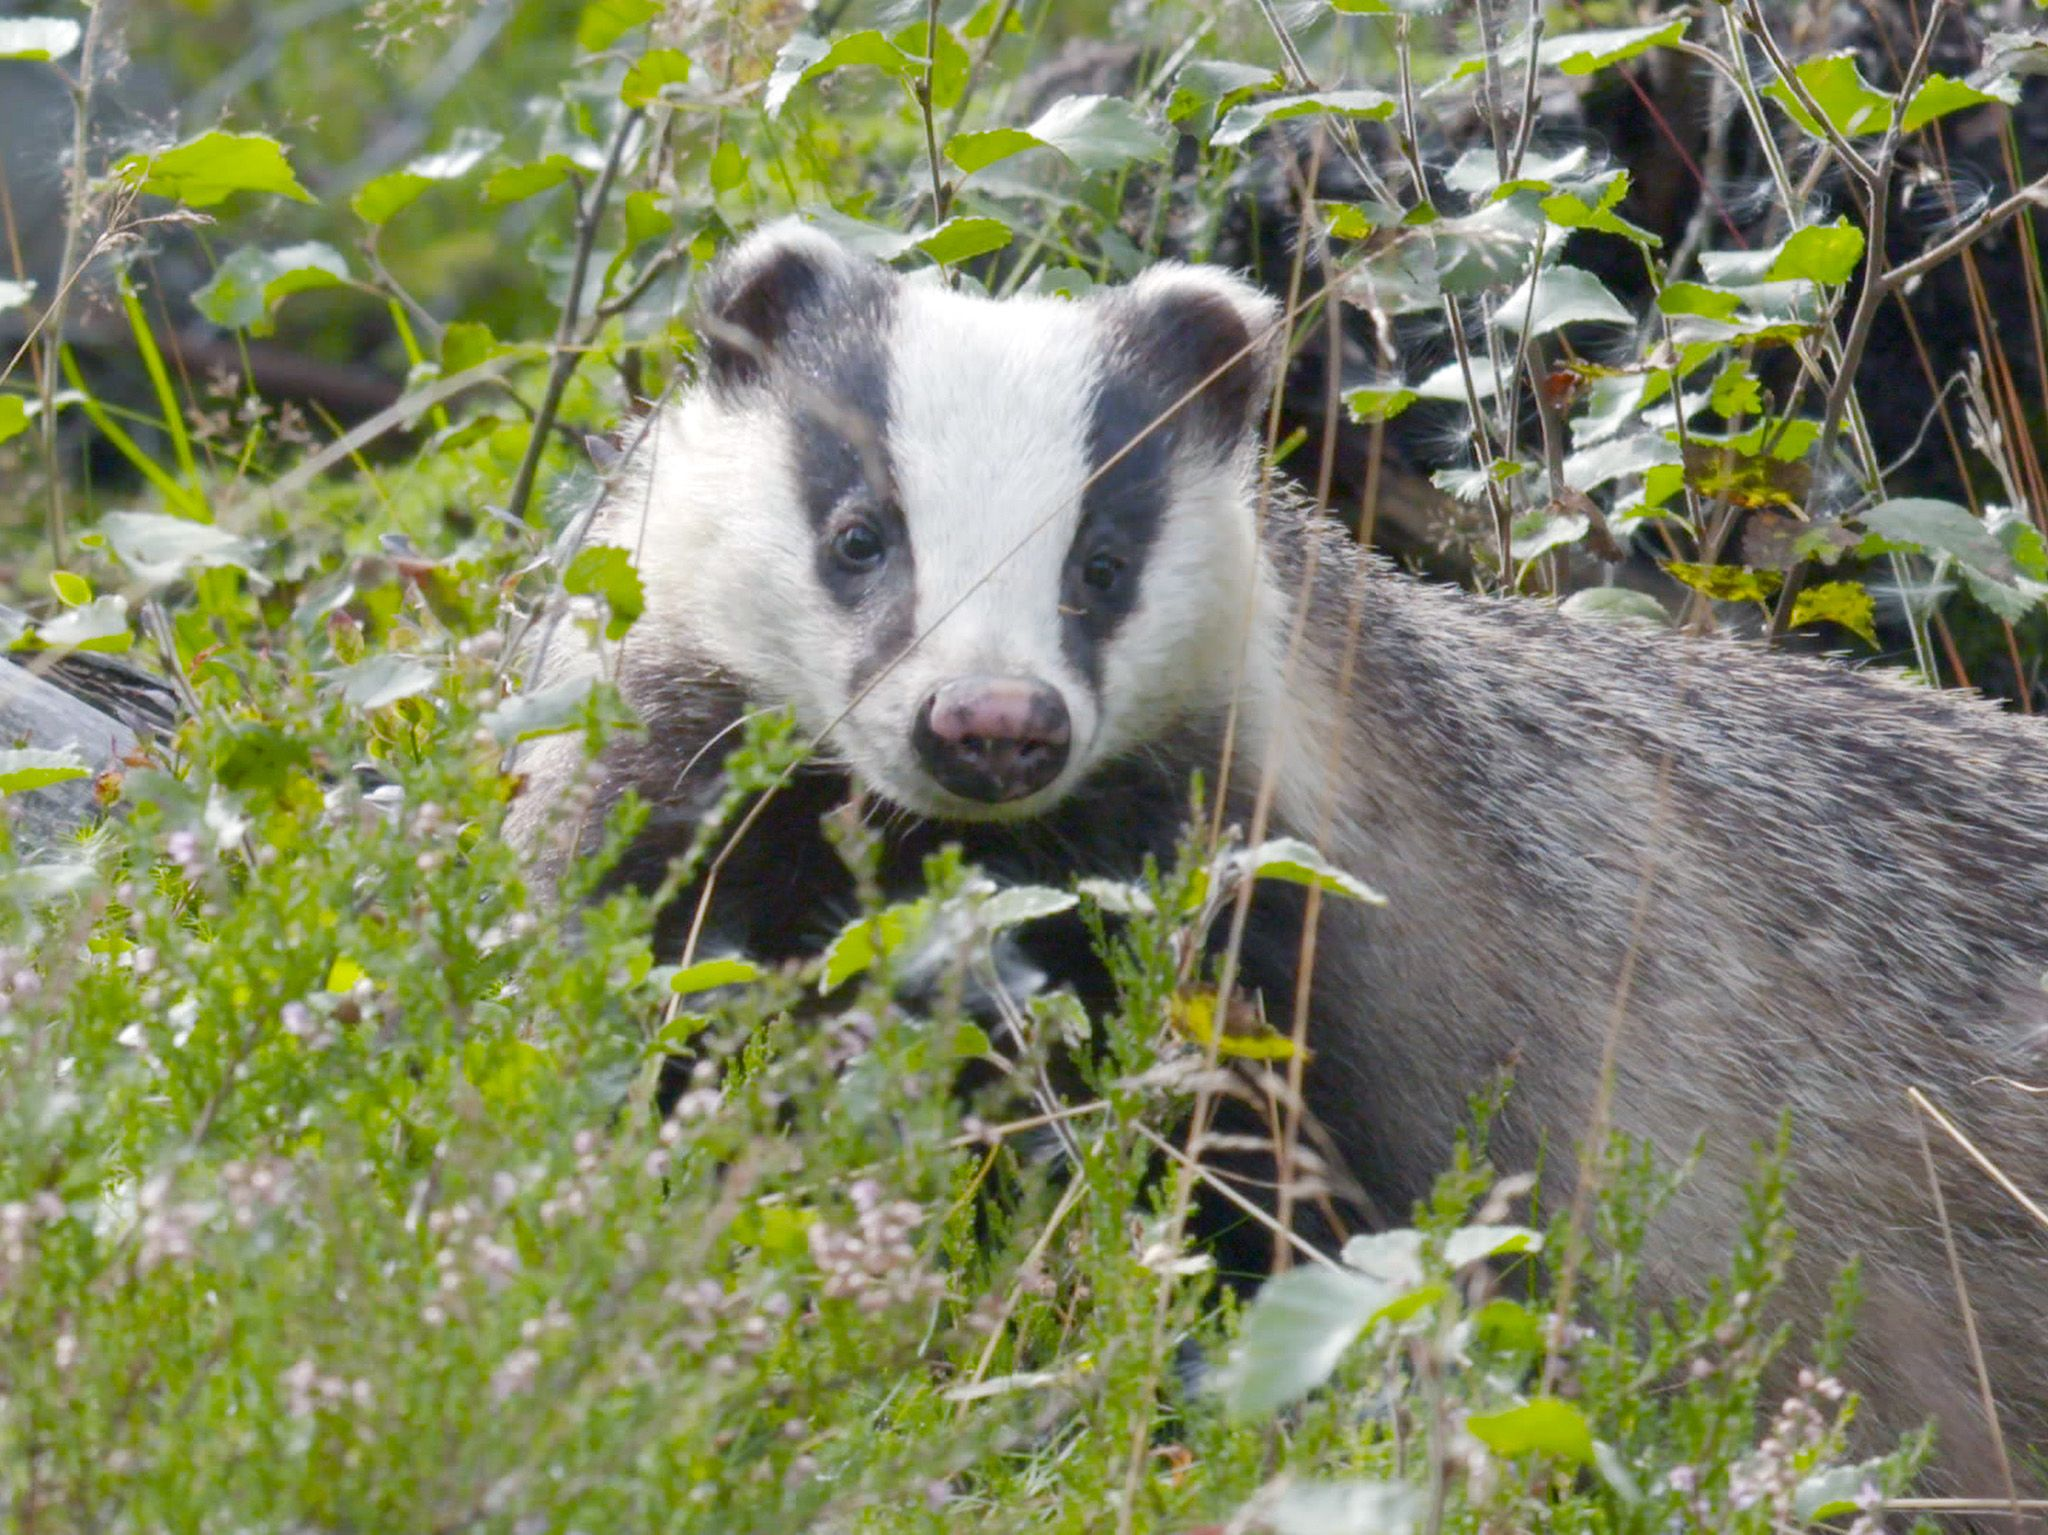 Badger in the bushes.  This image is from Wild Scandinavia. [Foto del giorno - August 2019]